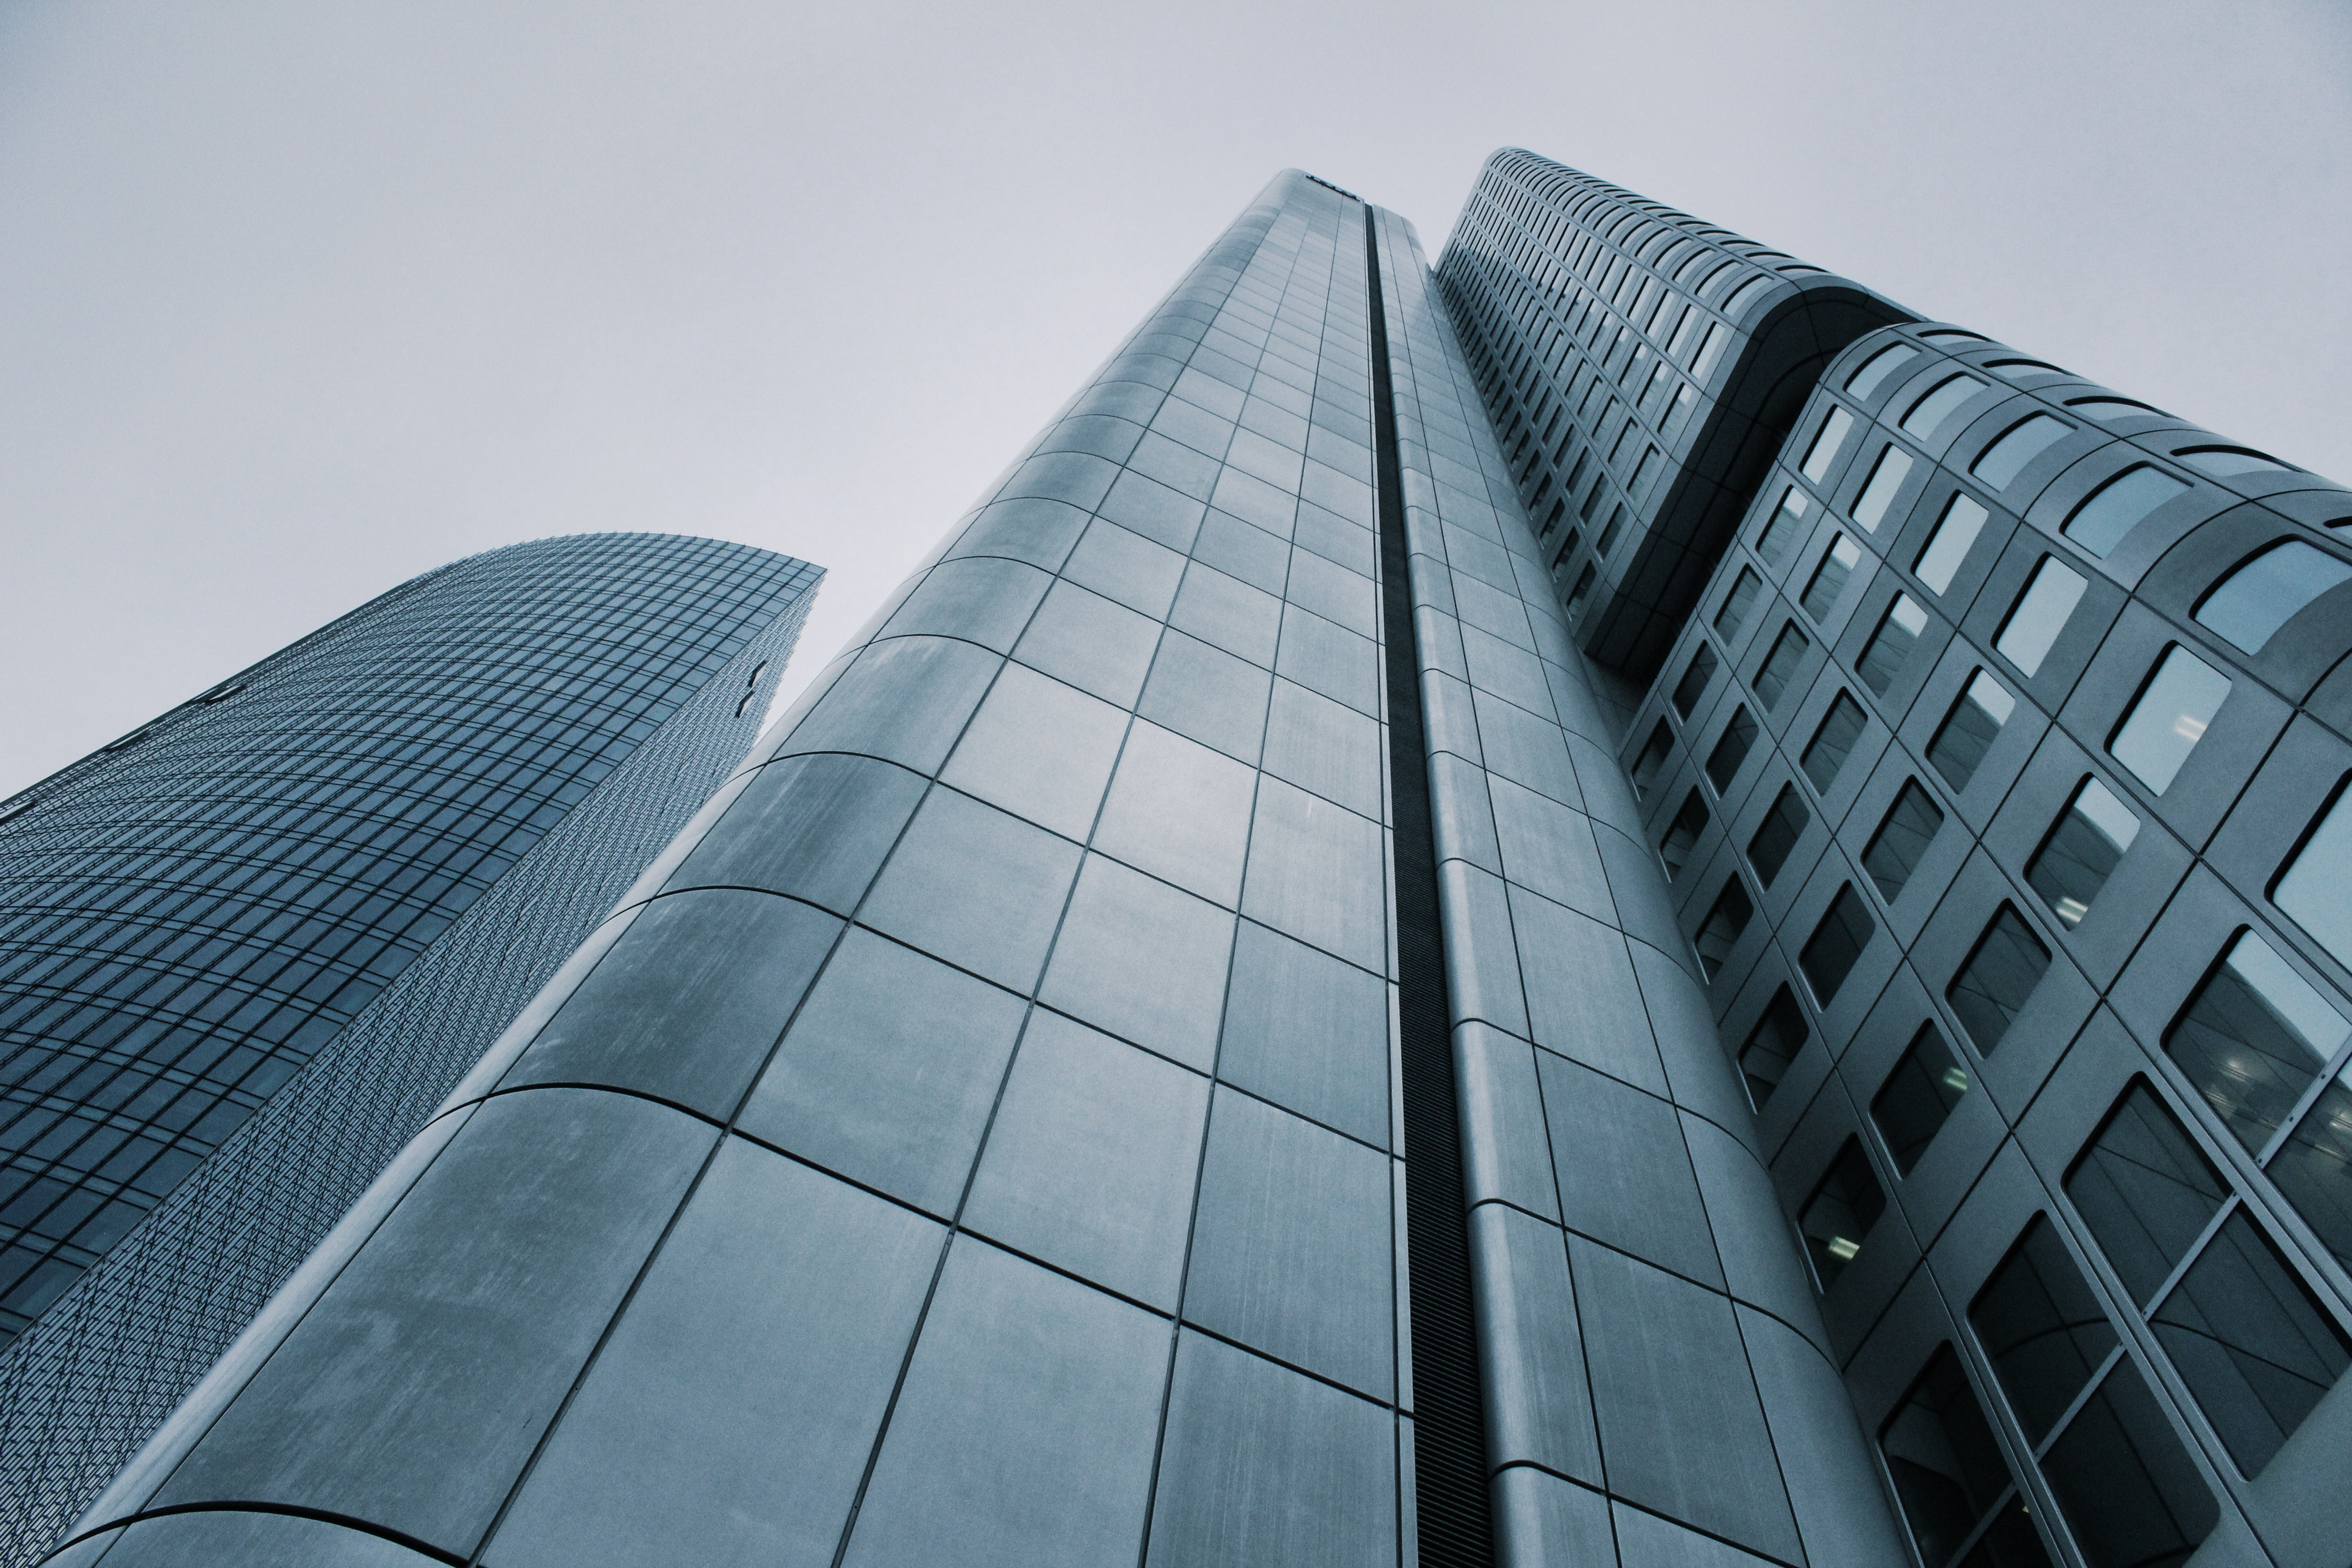 Photo of skyscrapers by Pixabay; C corporation vs S corporation